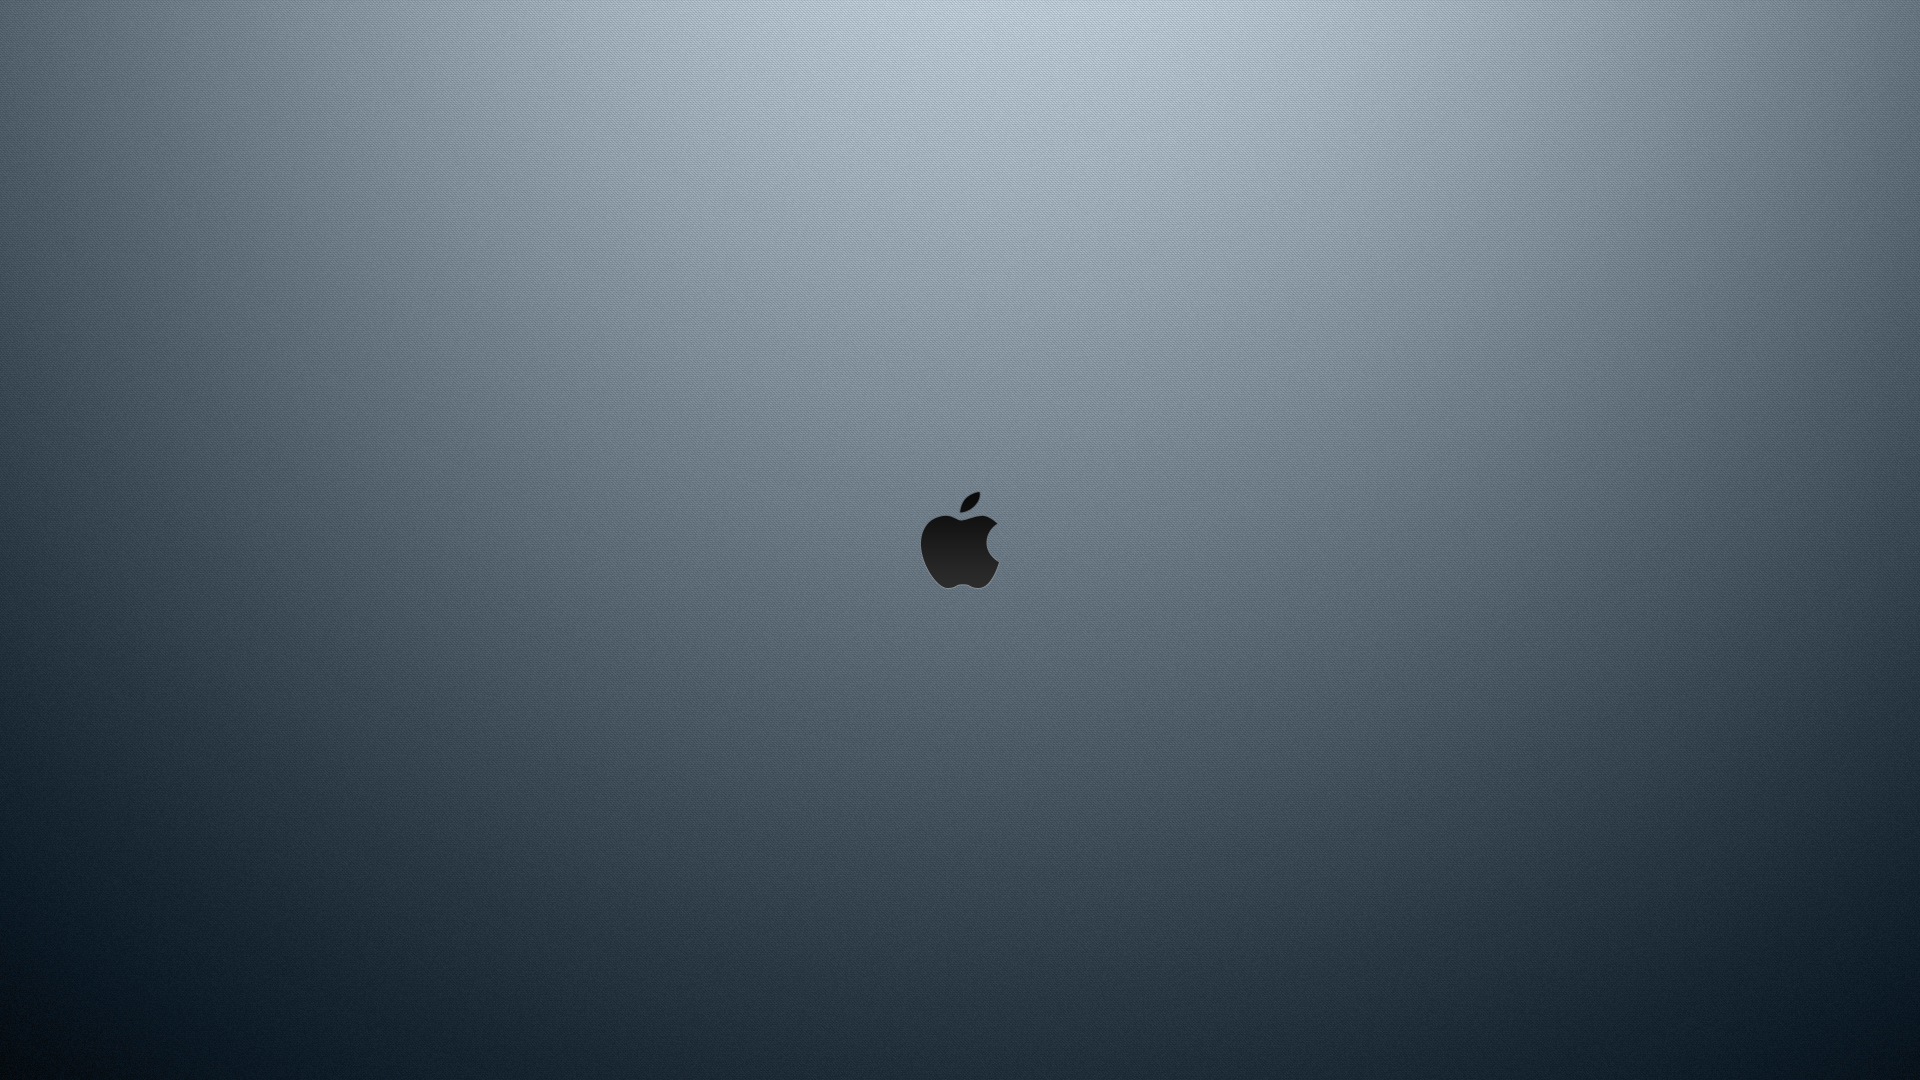 Apple OS X Gradient Wallpaper   HD Wallpapers 1920x1080